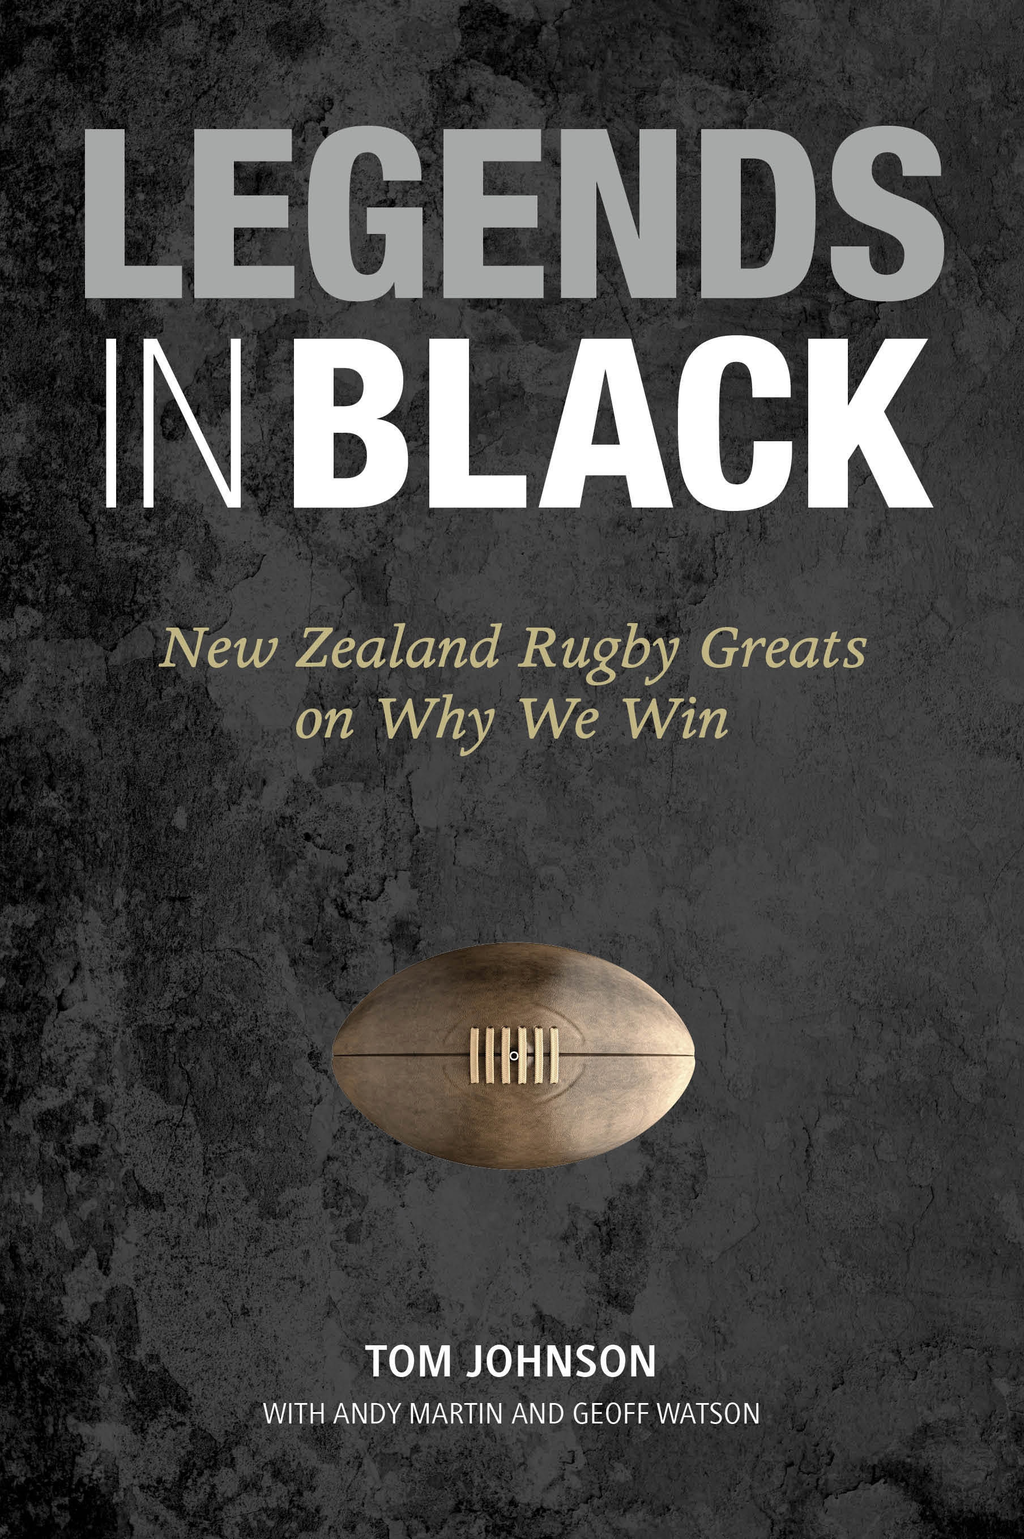 Legends in Black New Zealand Rugby Greats on Why We Win